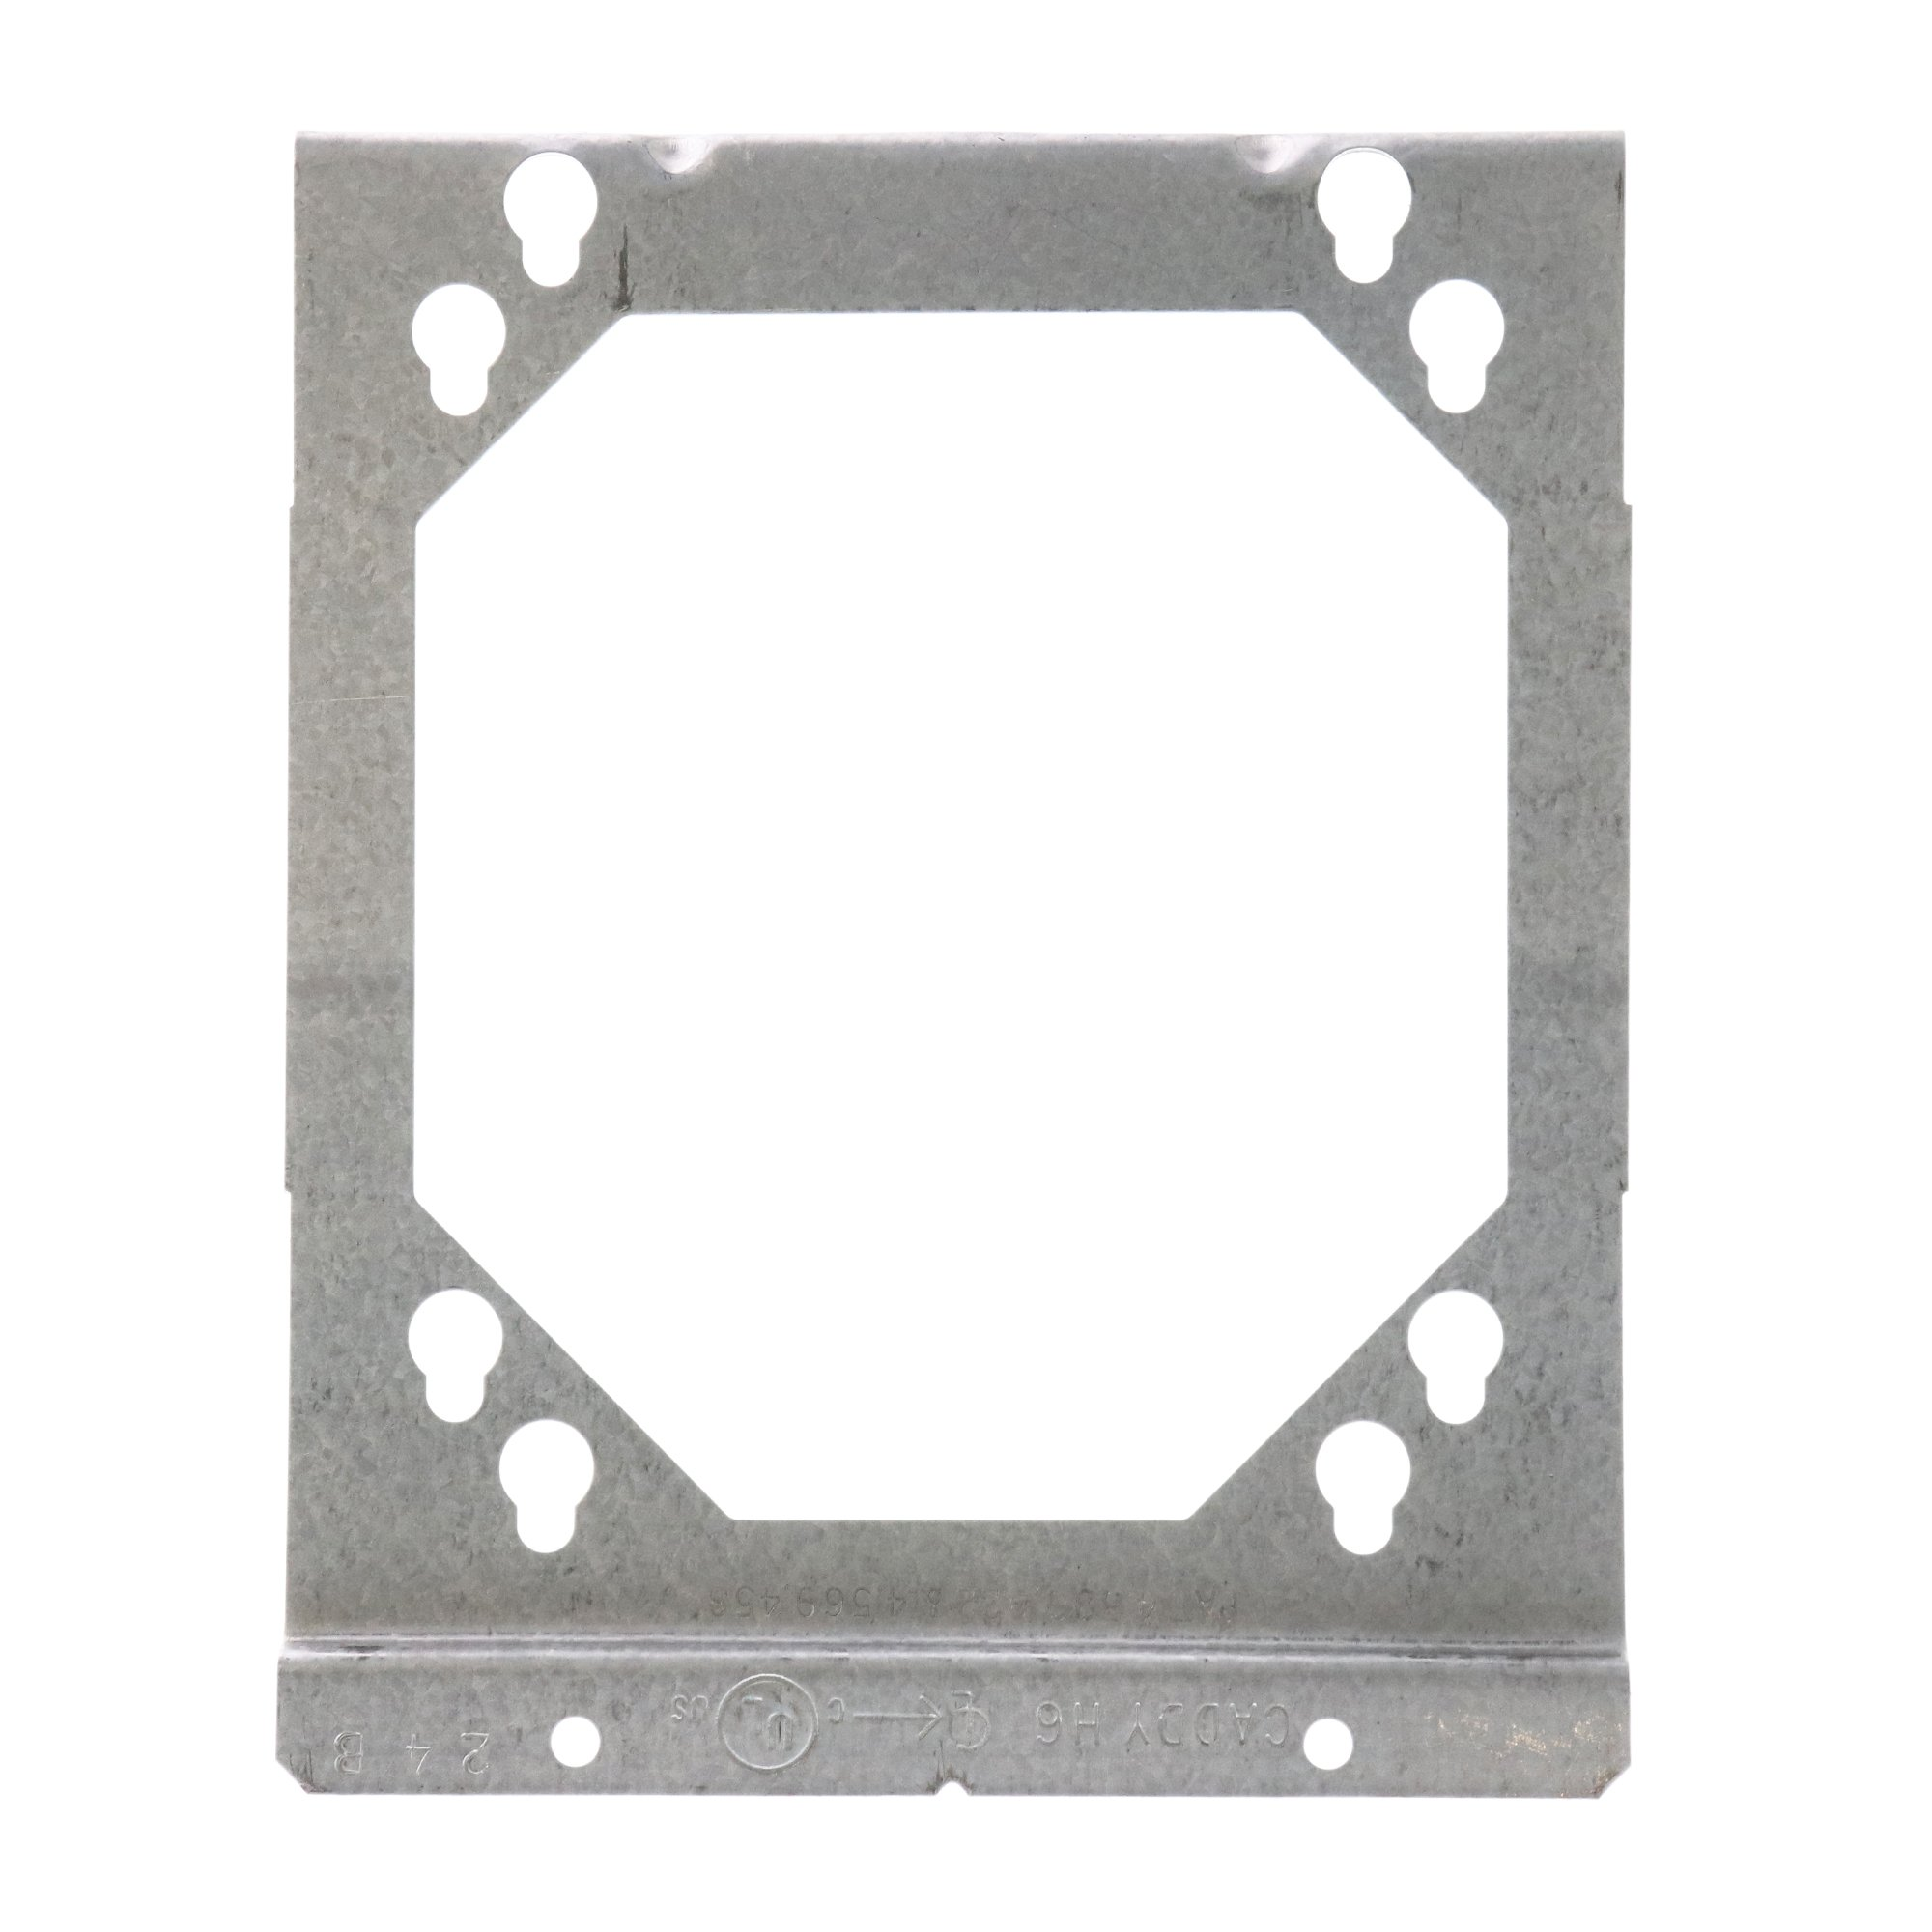 Caddy Erico H6 4-Inch Outlet Box Support for 6-Inch Metal Studs (50 Pack) by Erico Caddy Cadwal (Image #3)